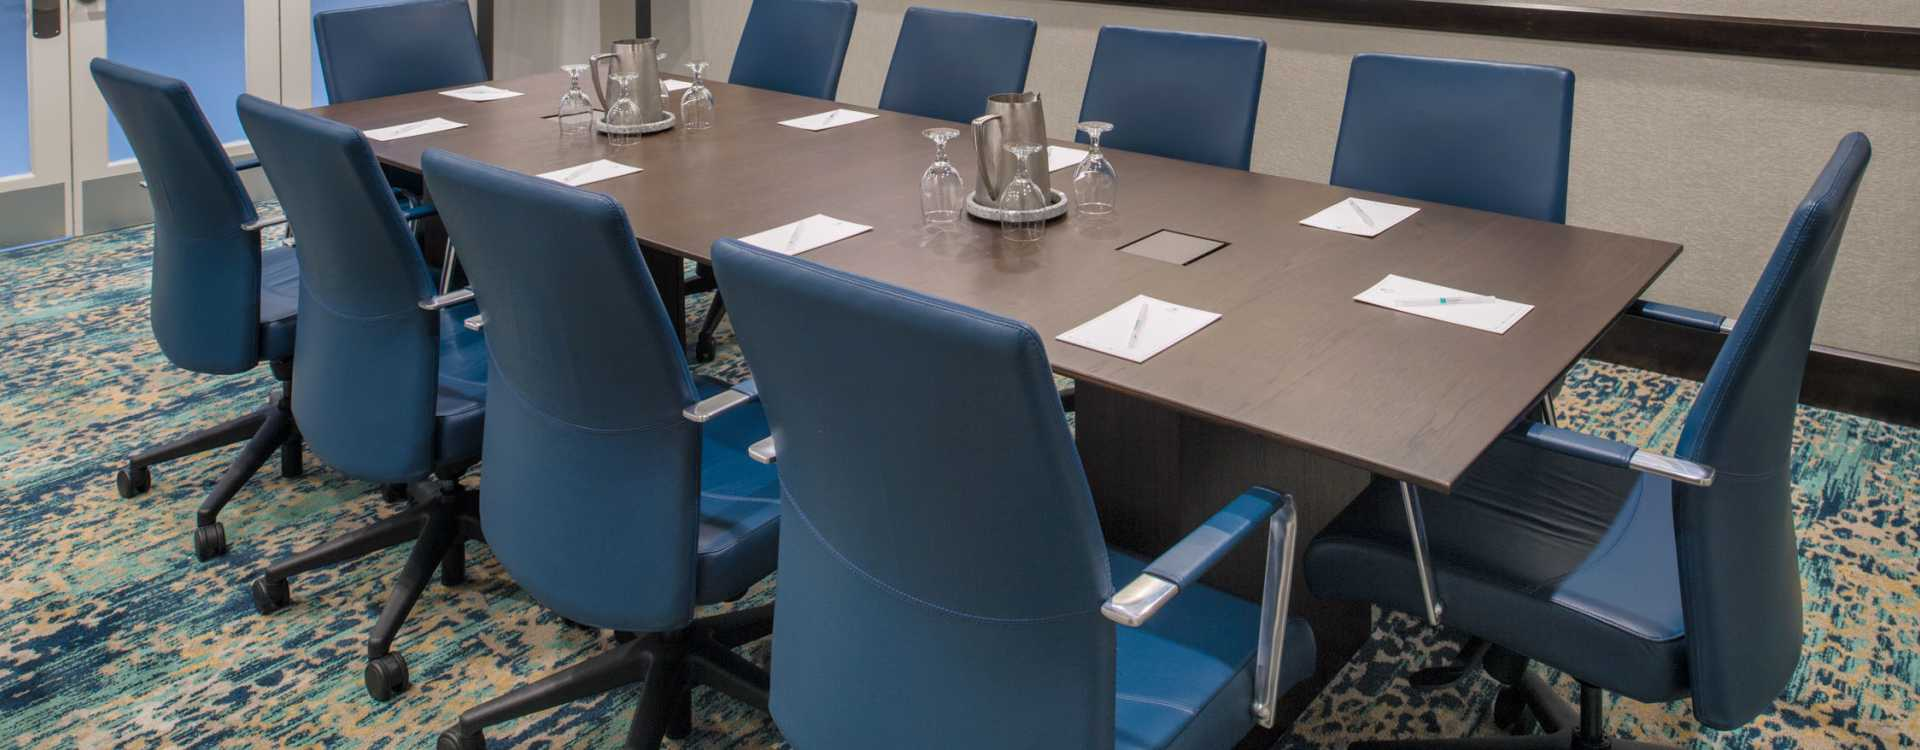 meeting-facility-Embassy_Suites_Seattle-Tacoma_International_Airport_Meeting_Facility-8.jpg